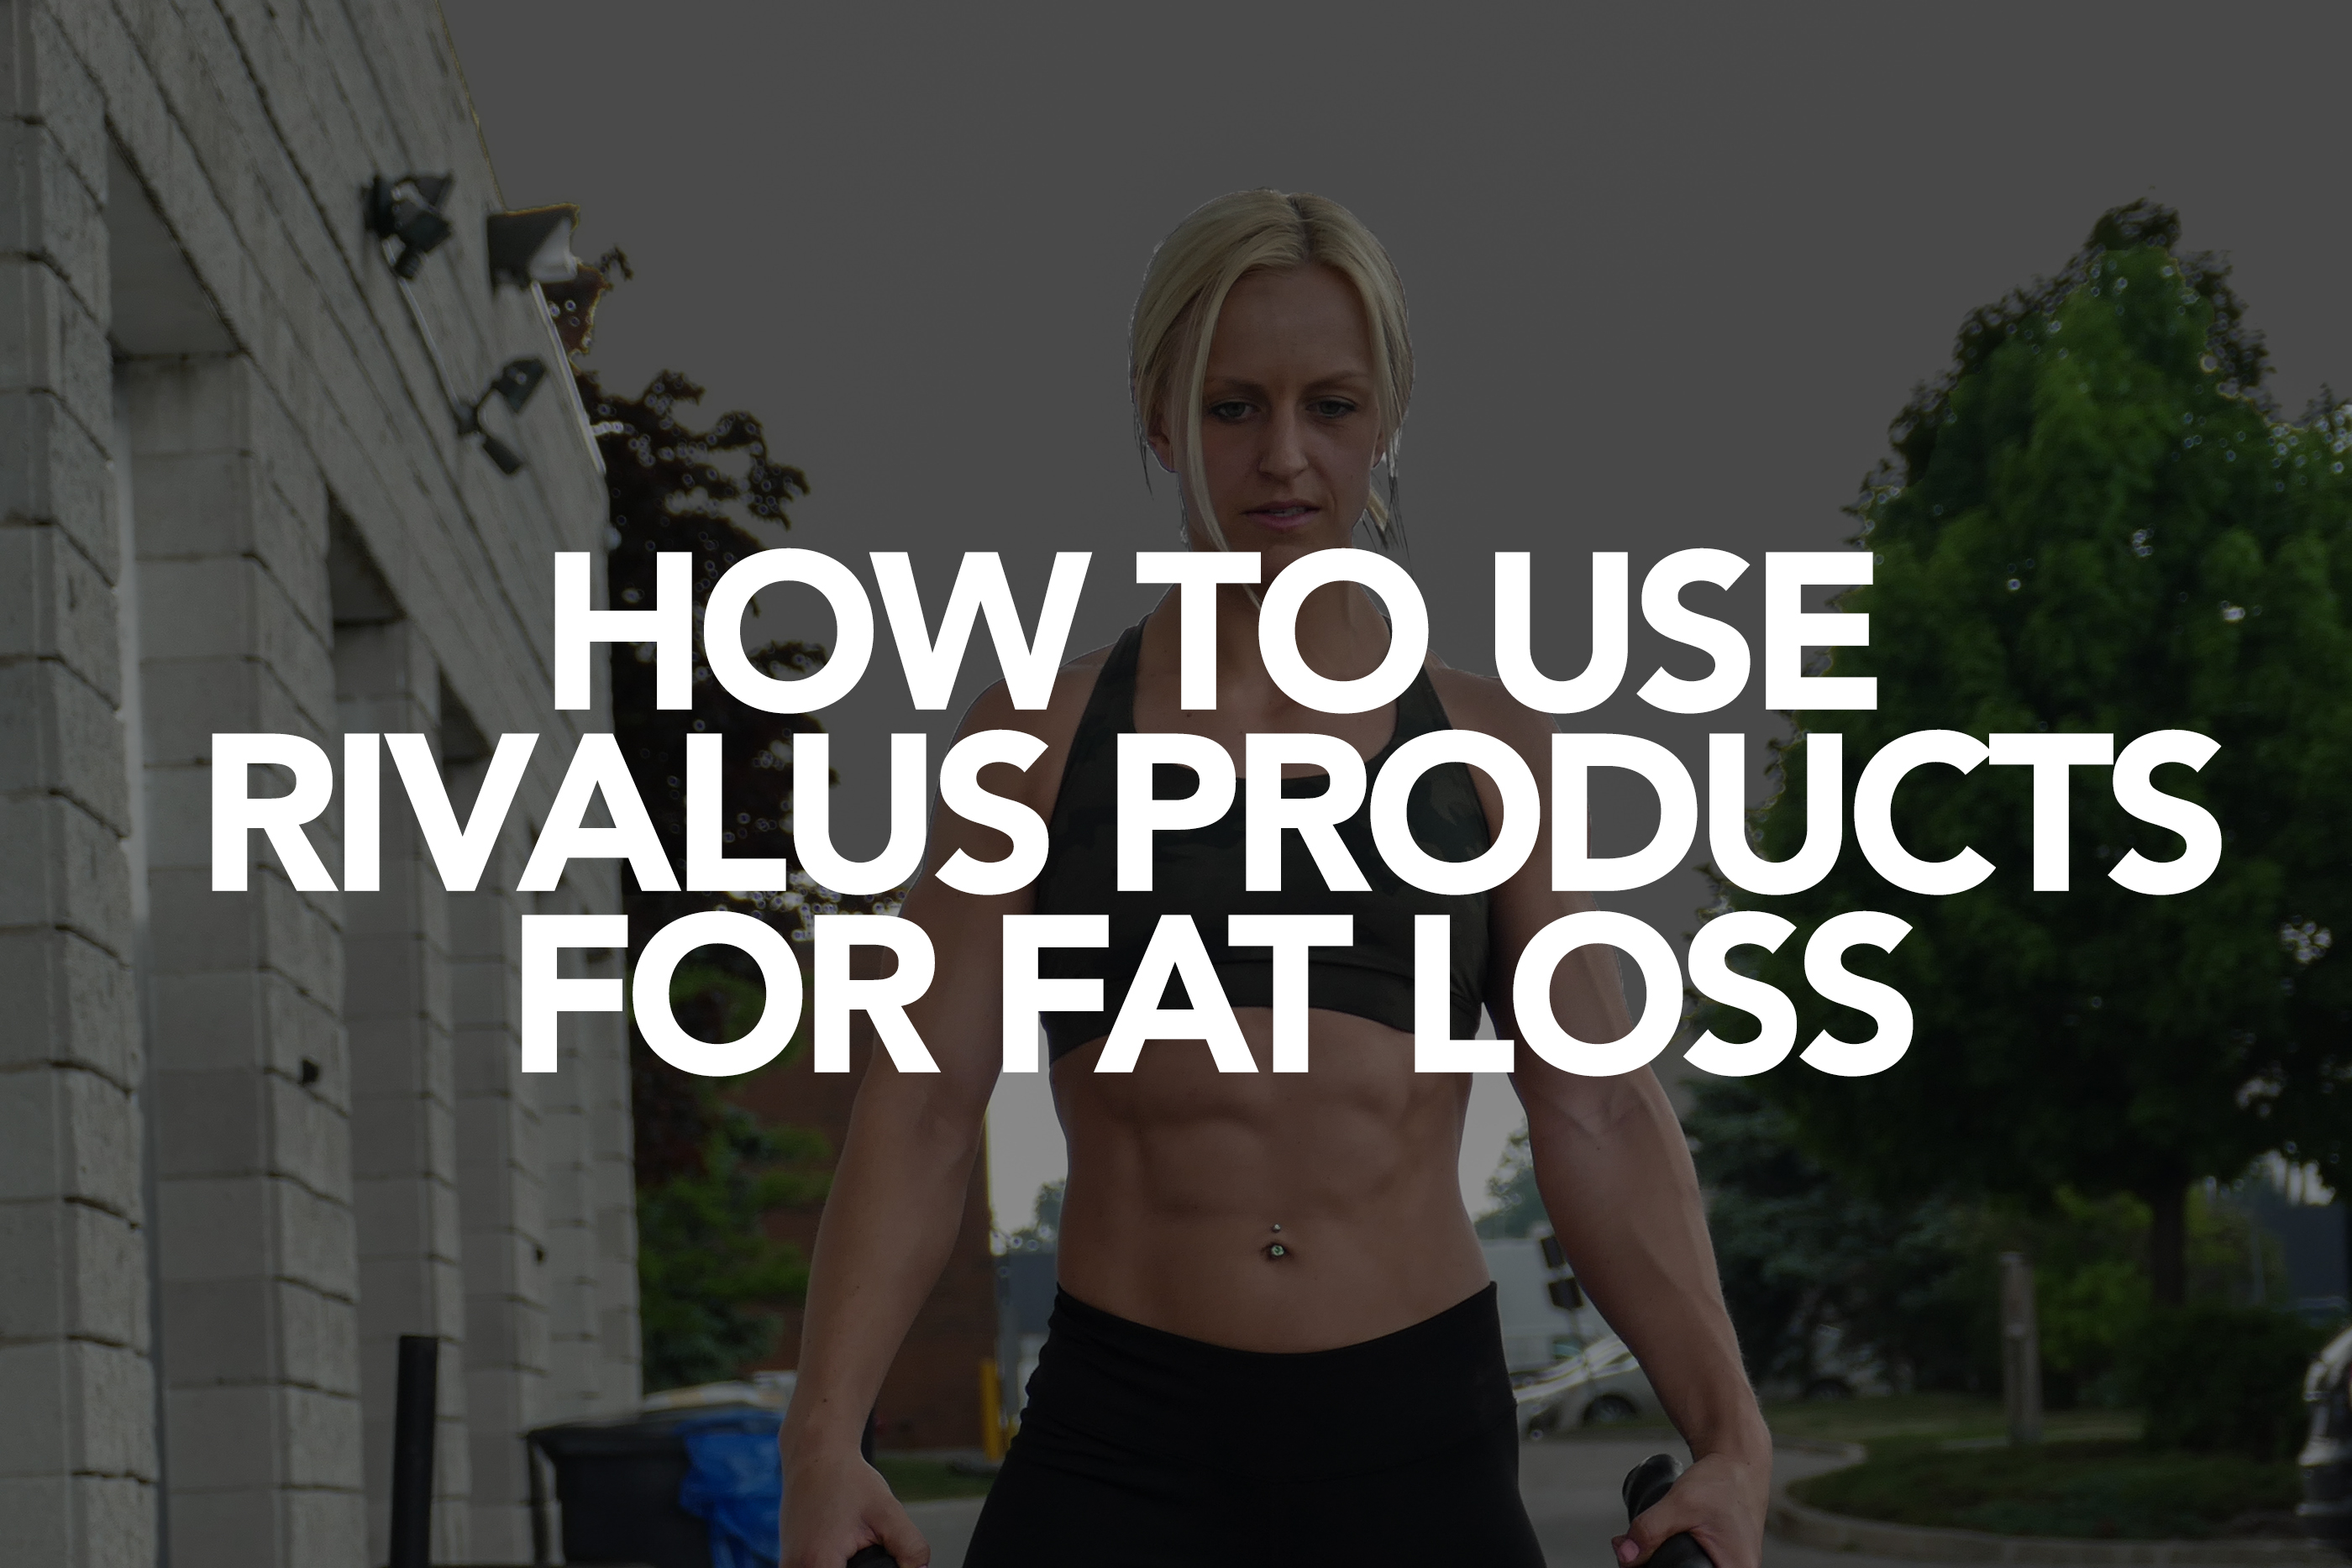 HOW TO USE RIVALUS PRODUCTS FOR FAT LOSS